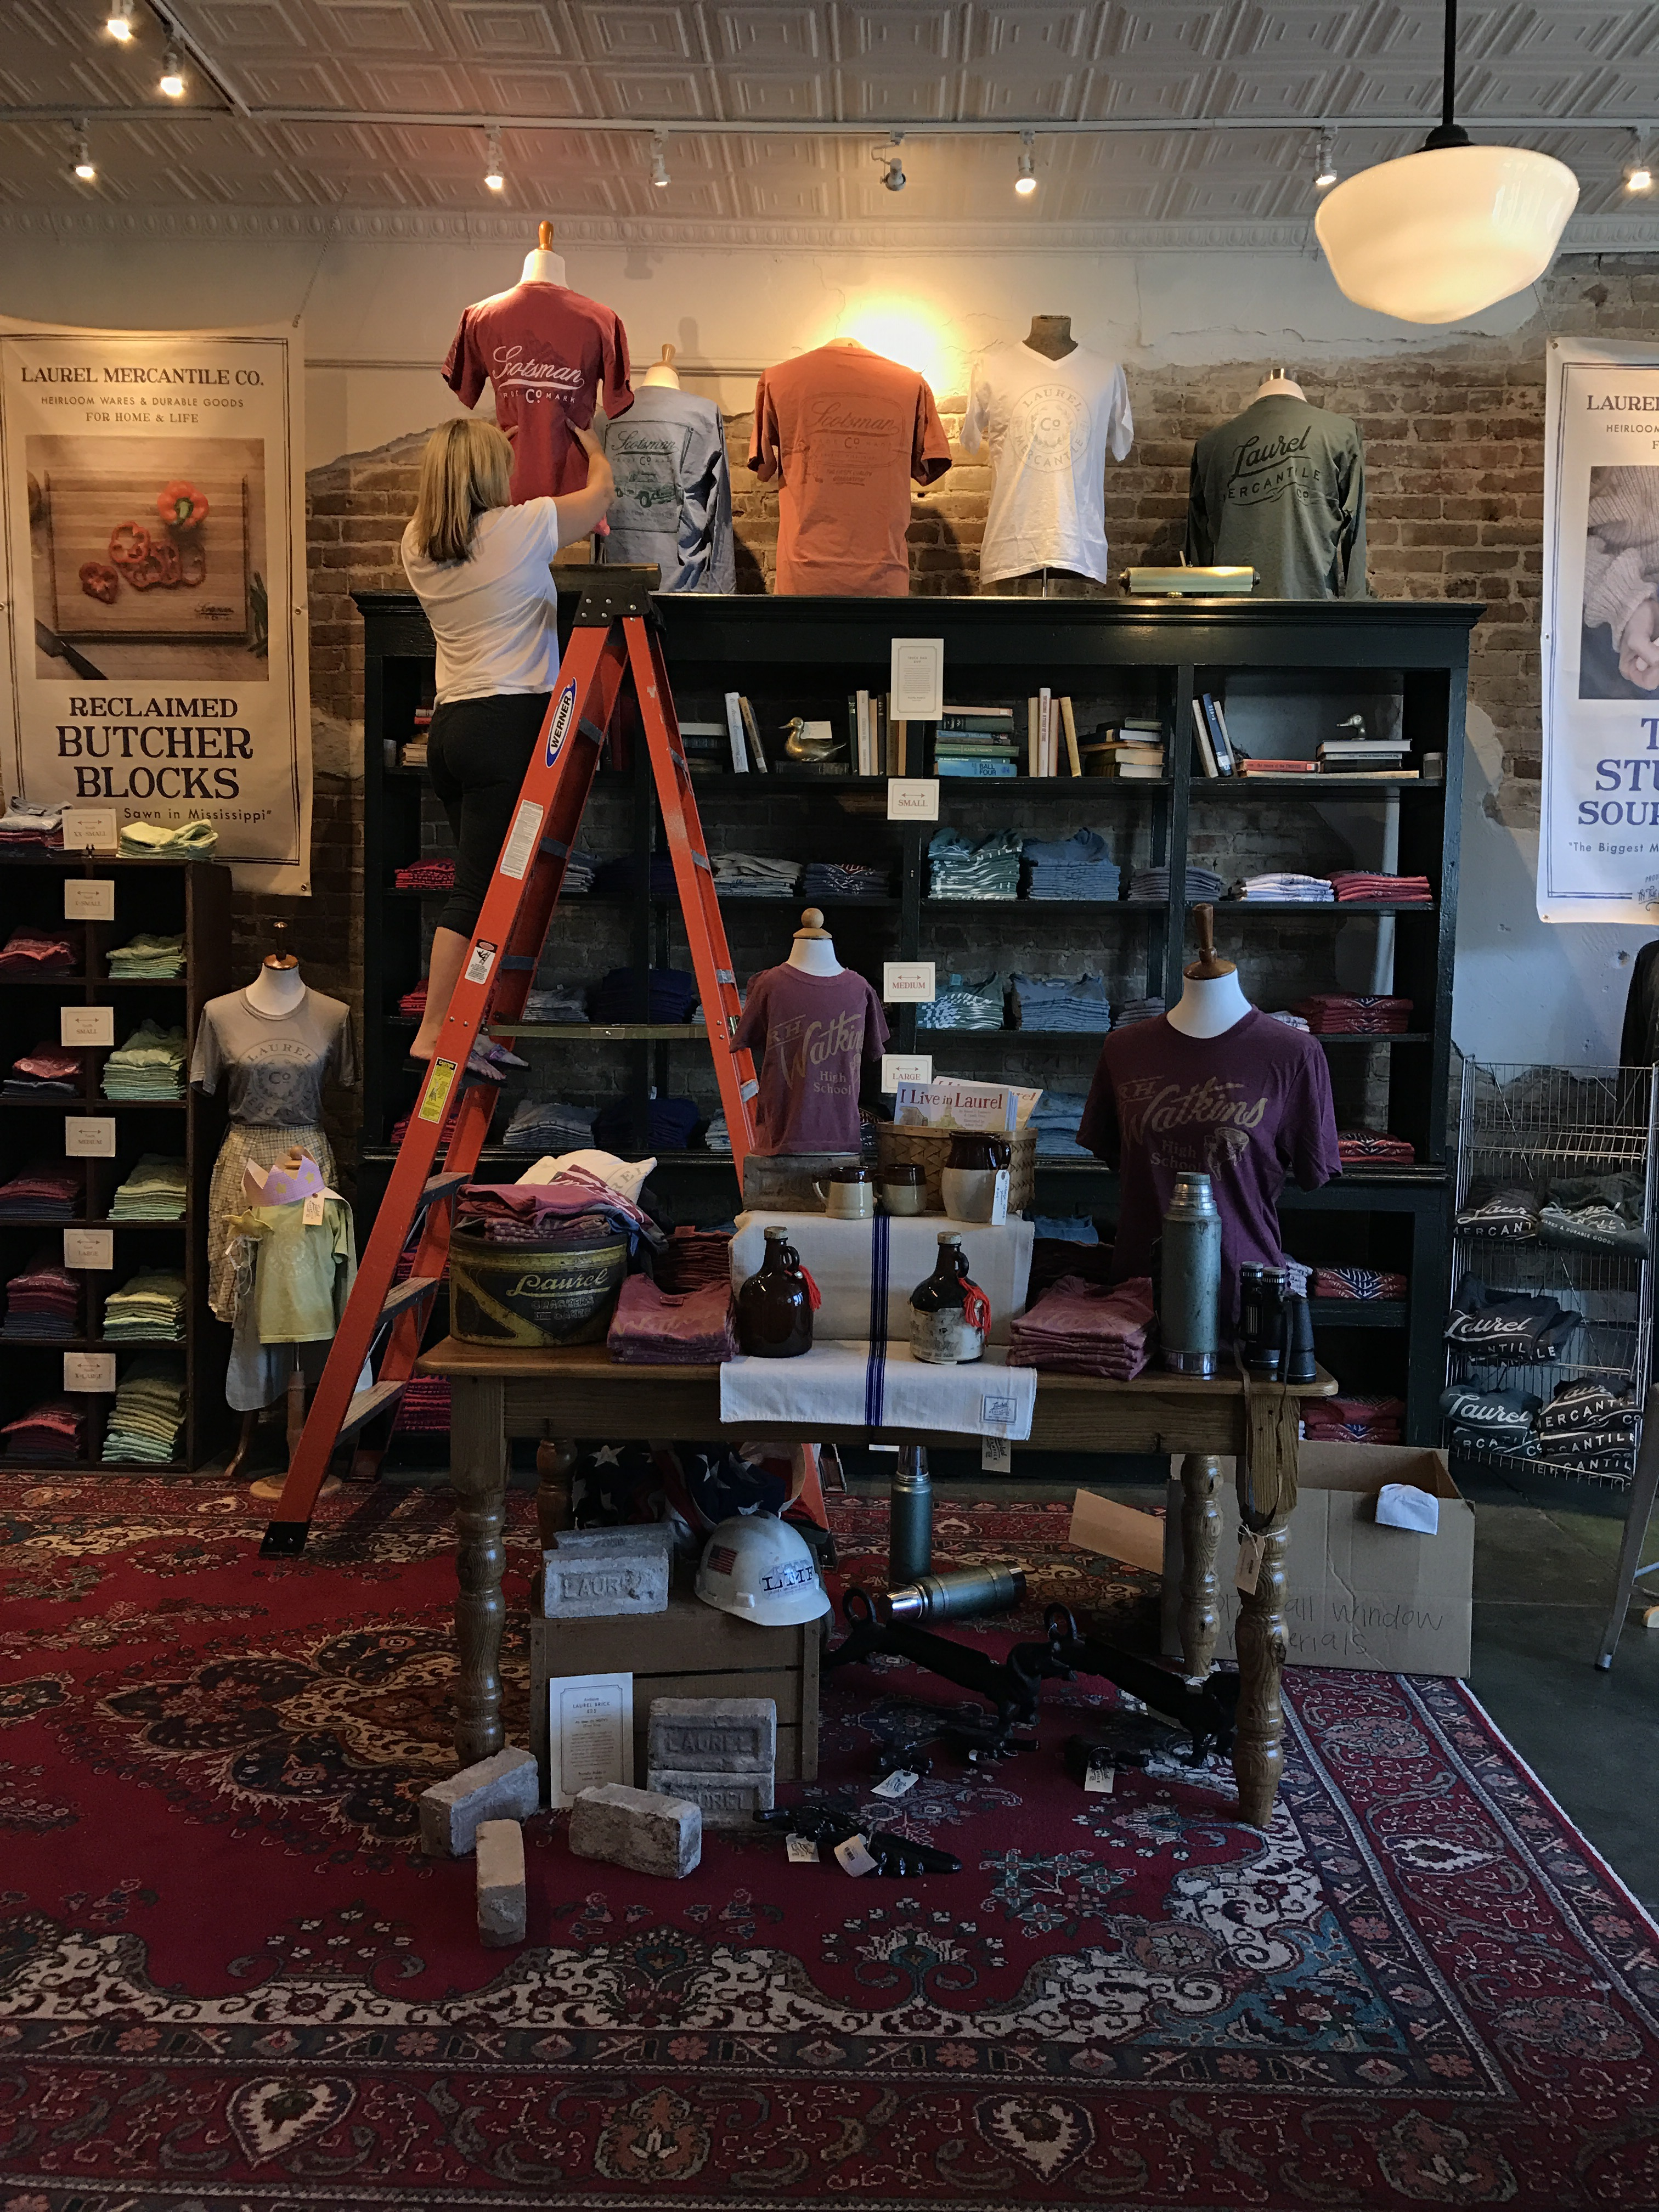 2812 Fall Display Laurel Mercantile Co Re Case 310g Crawler Wiring Diagram In Reply To Holly Otis 0420 We Spent The Afternoon Doing Mercantiles First Ever Installation And Its Been Kind Of A Dream Mine For So Longto Decorate Shop My Own